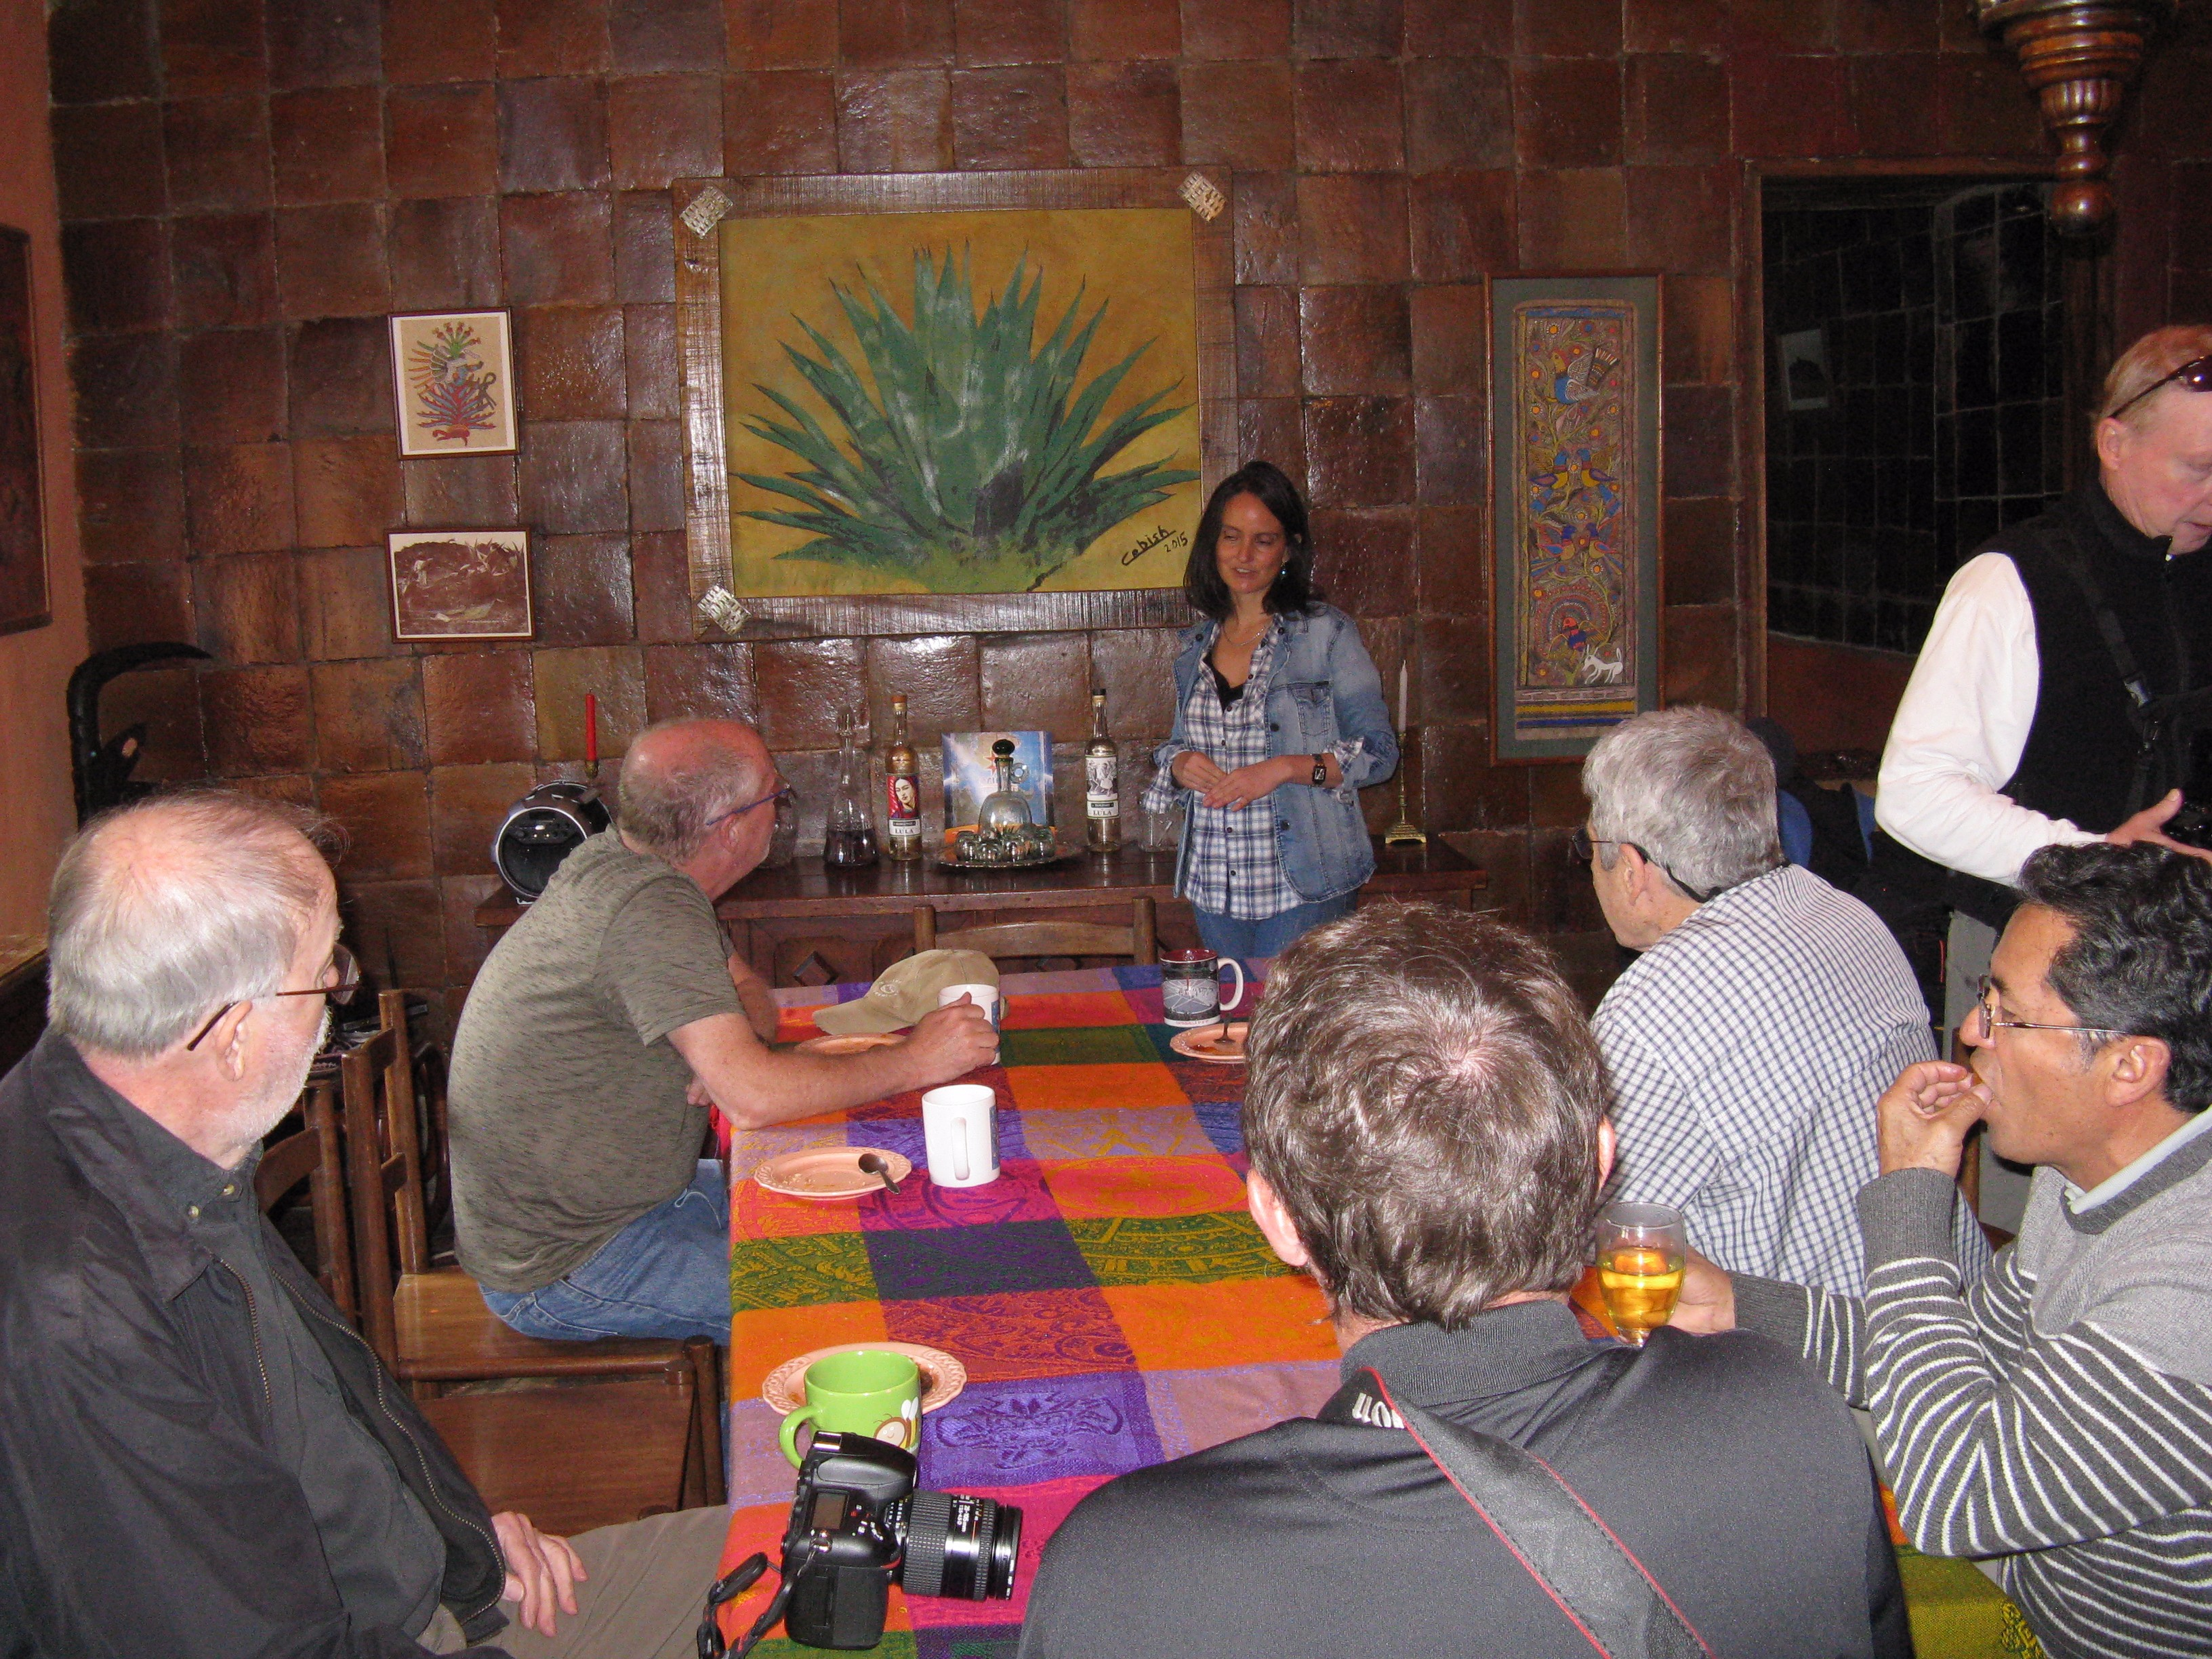 At Hacienda Guachalá, Cristobal presents on geodesy and locally produced foods.